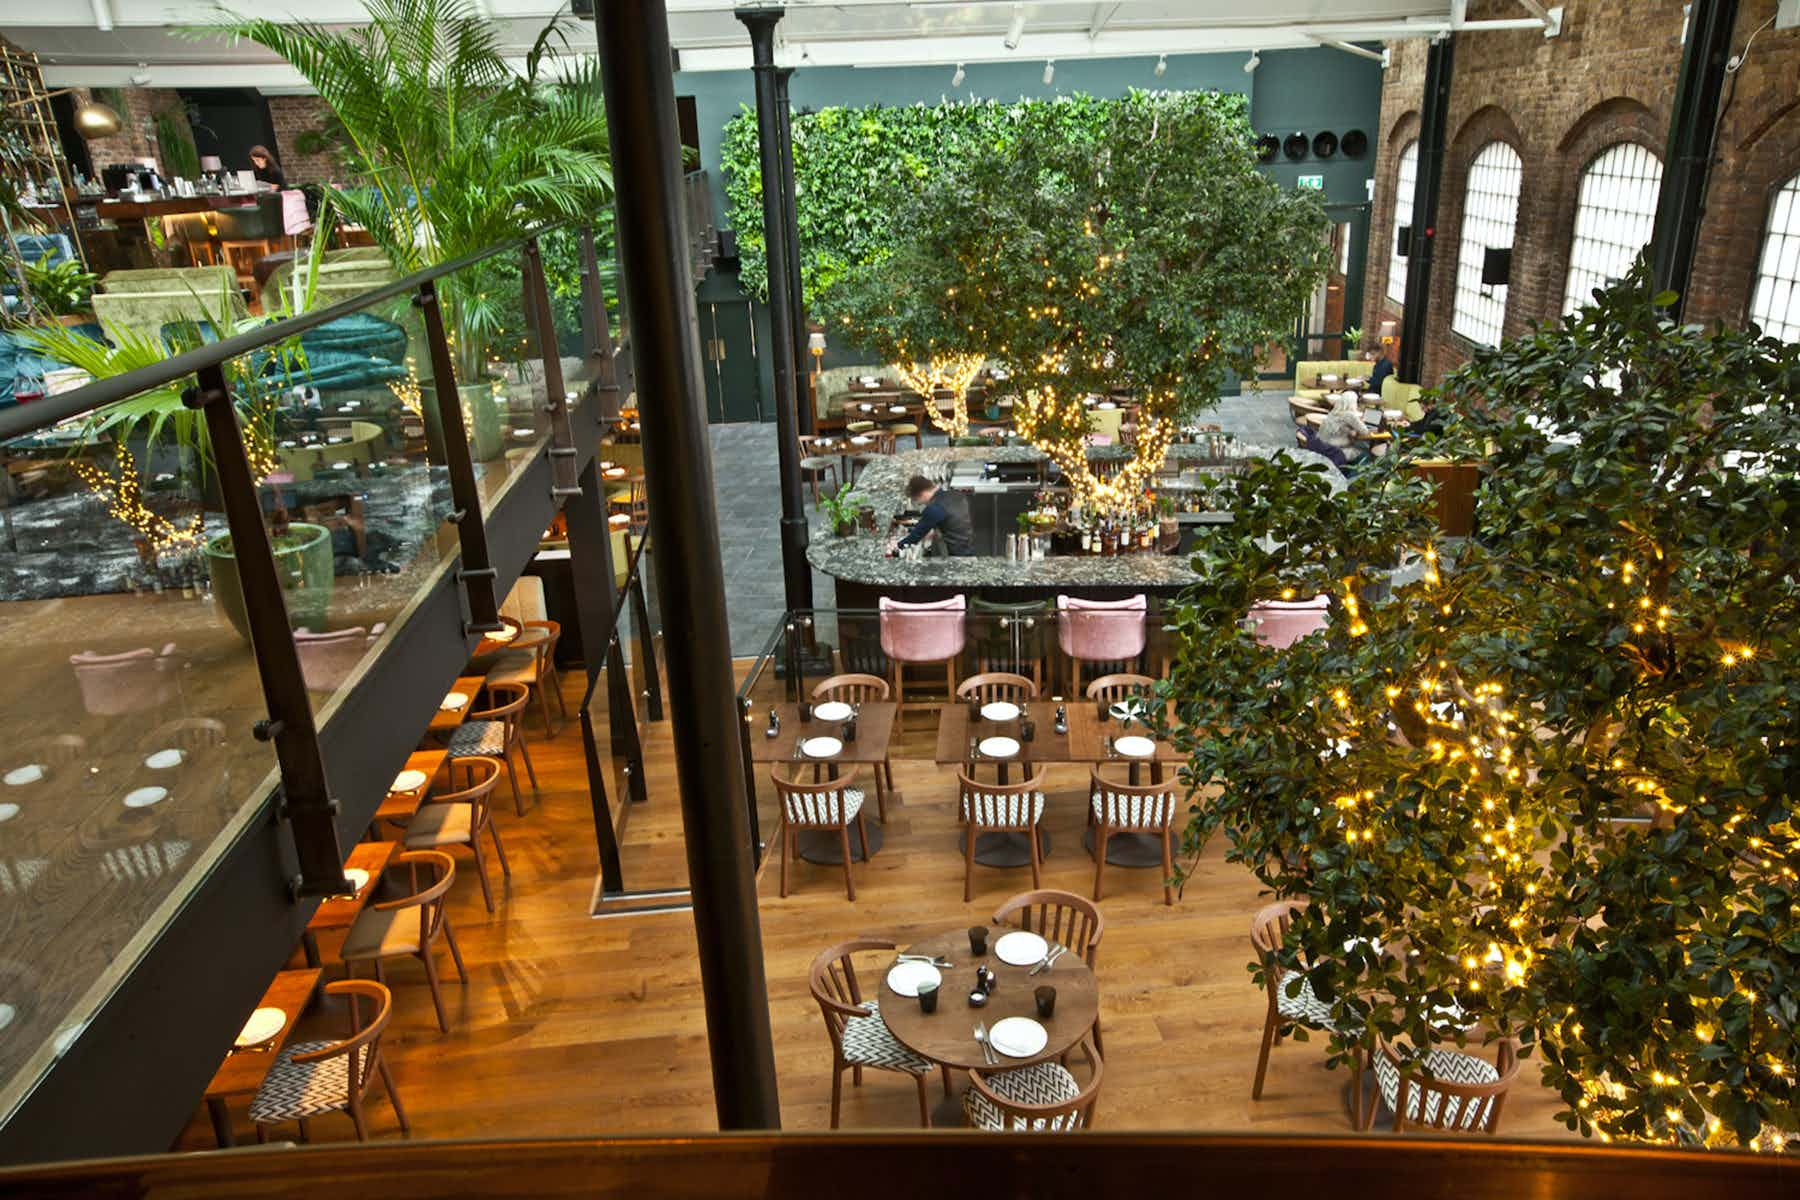 The Bloom Room, Restaurant Ours